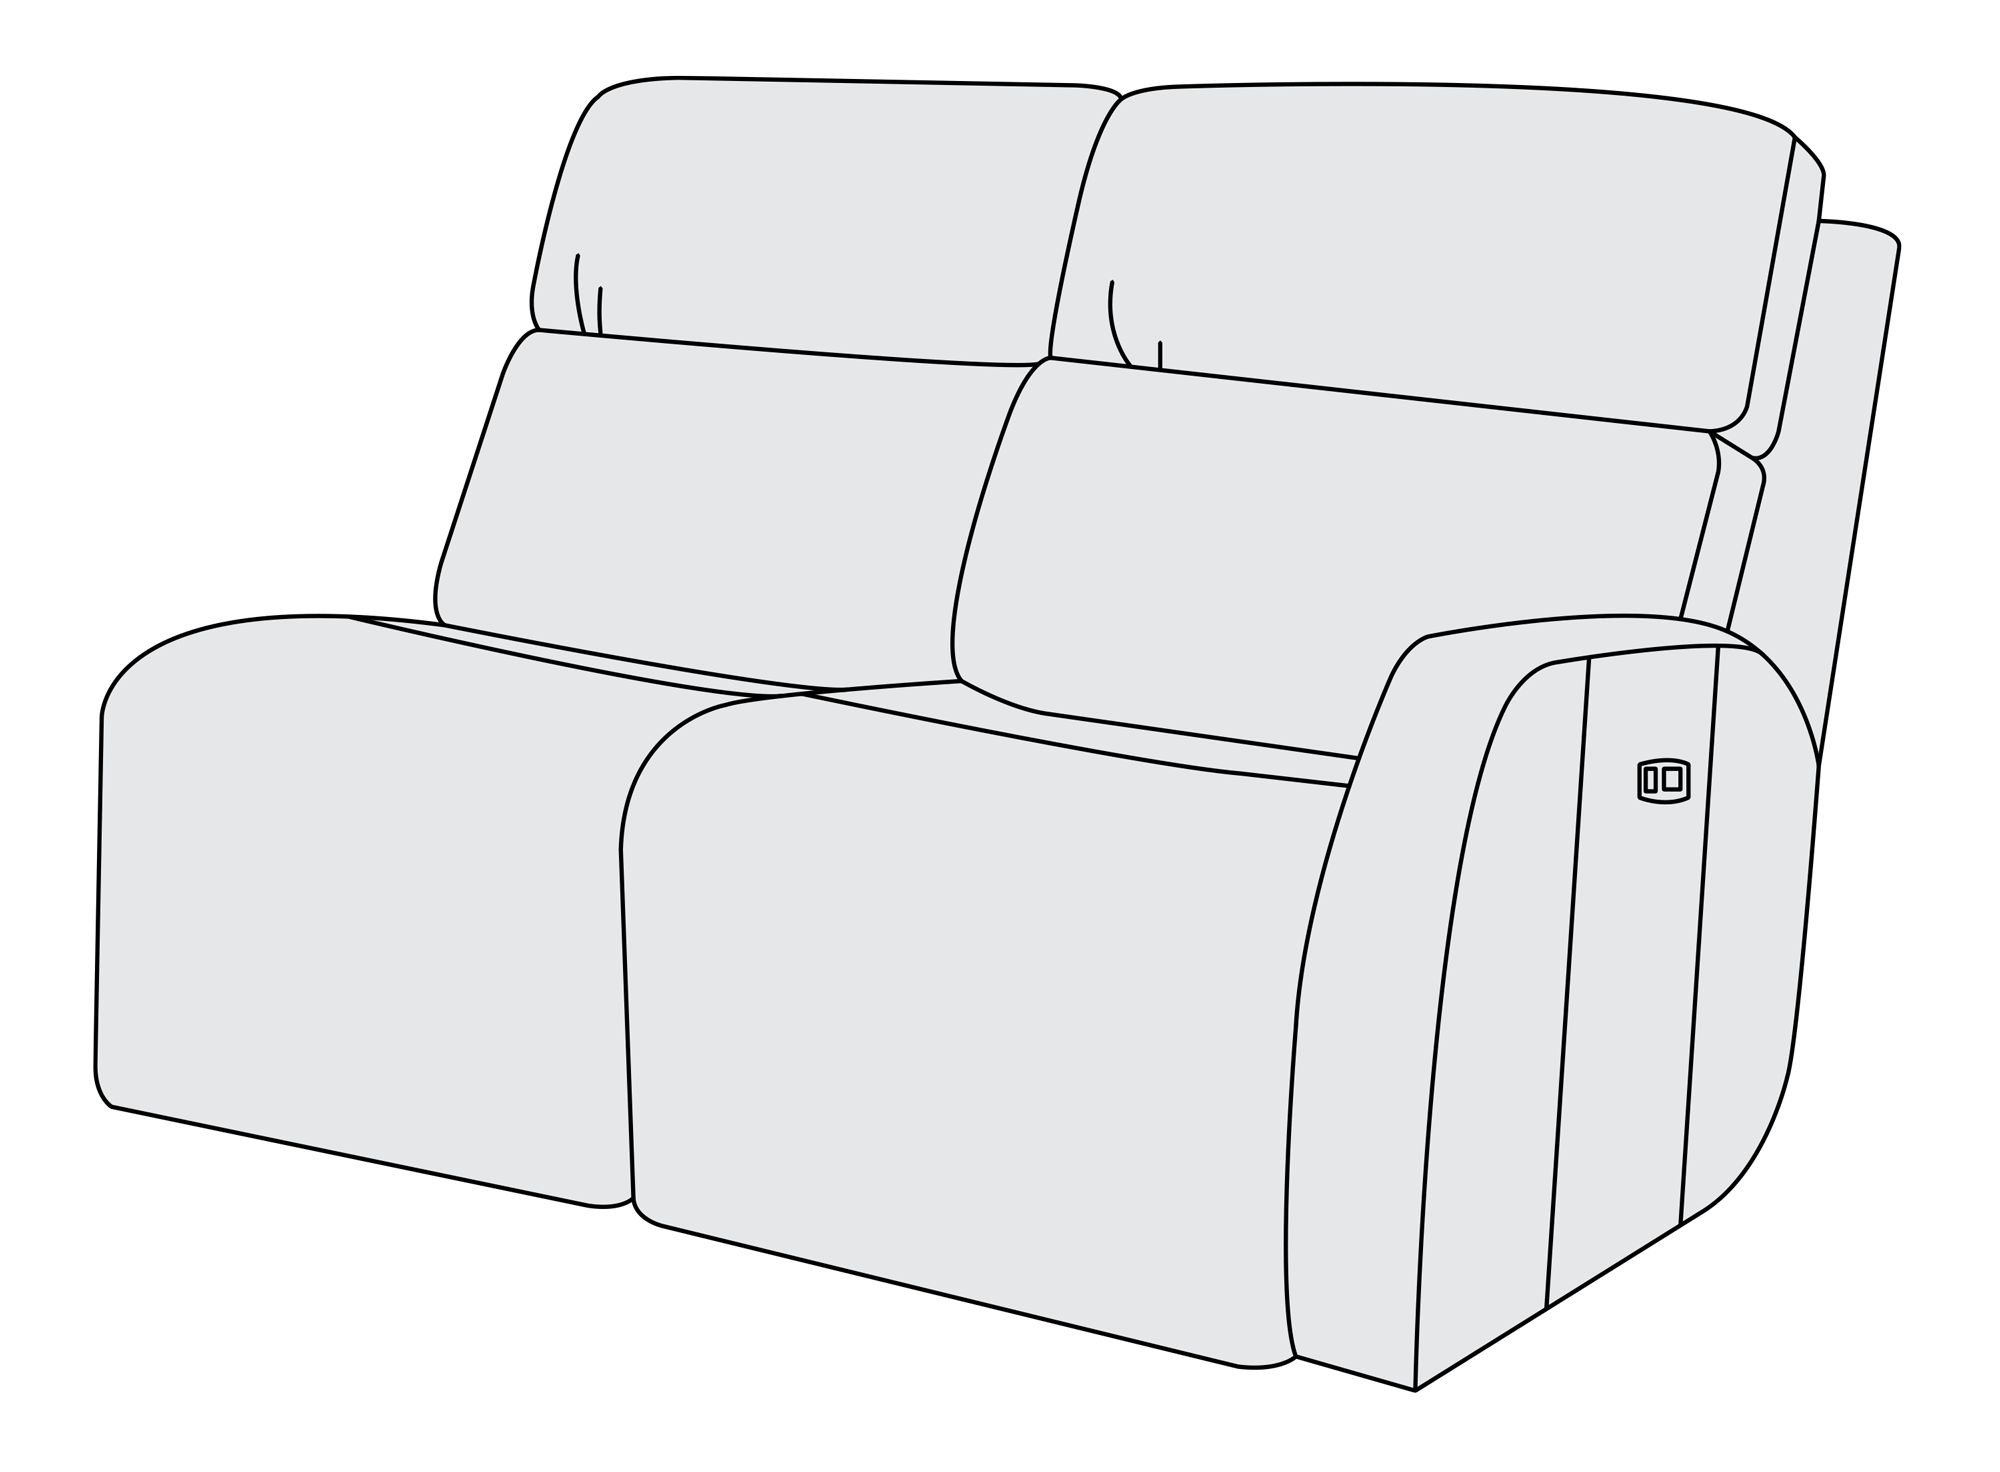 Couch clipart upholstery. Right arm power motion